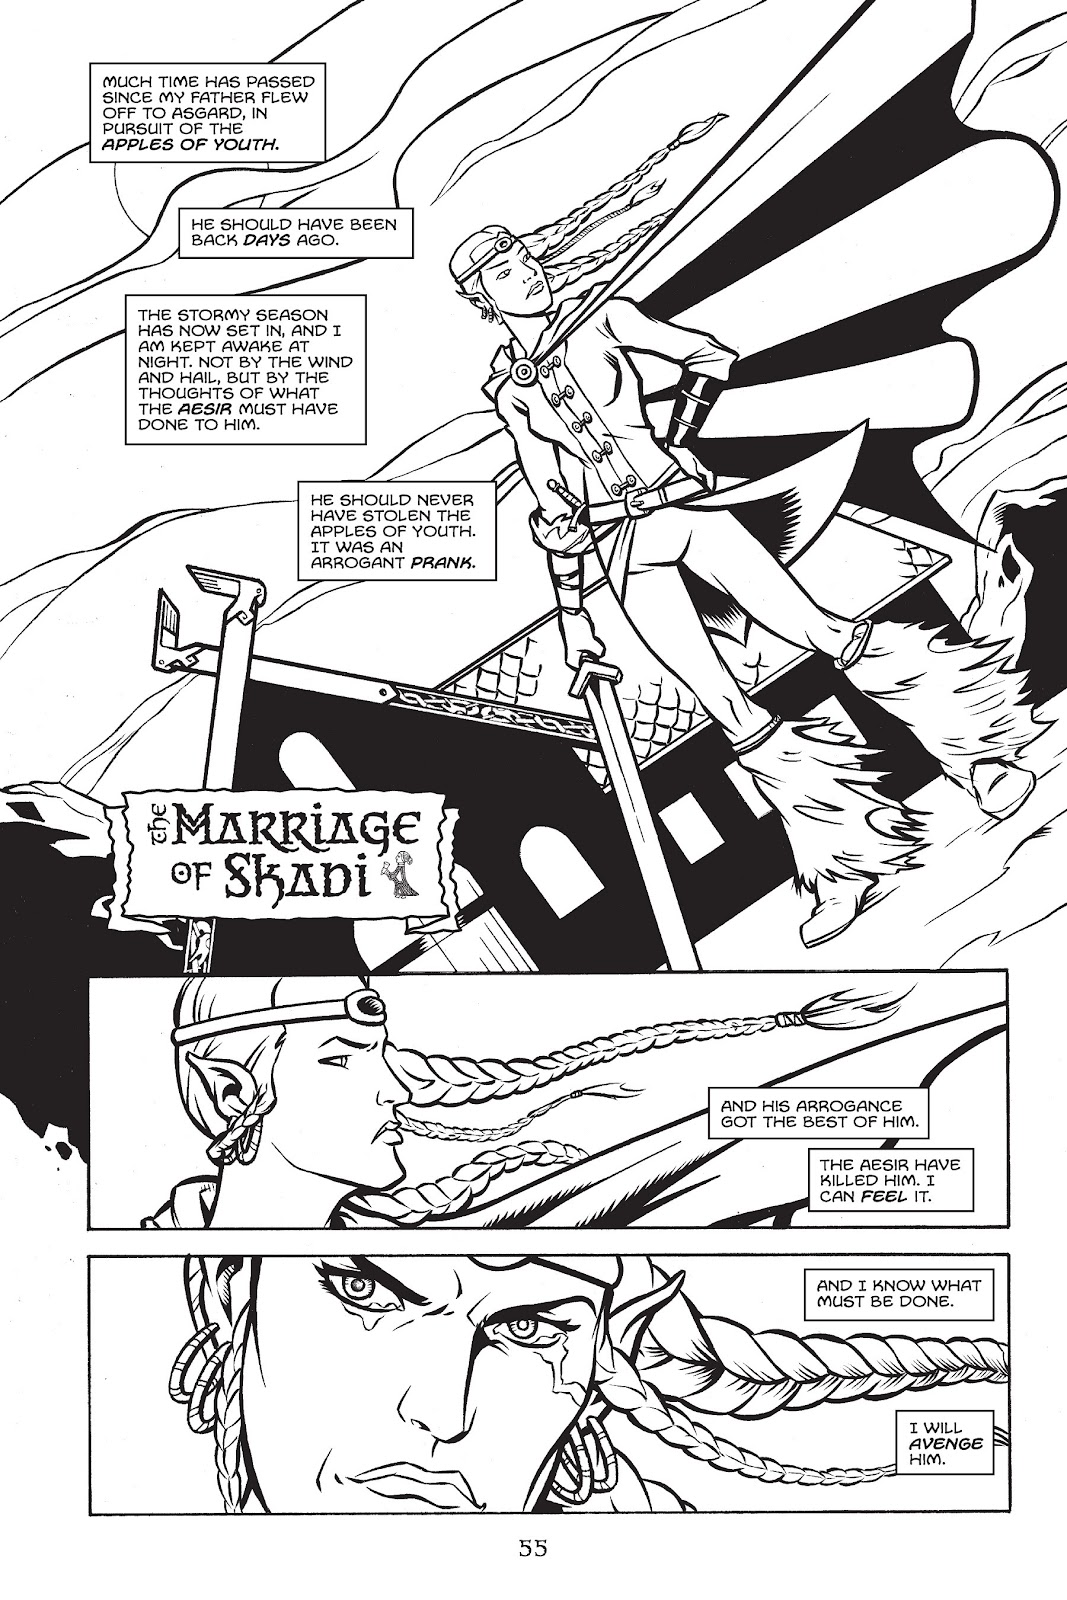 Read online Gods of Asgard comic -  Issue # TPB (Part 1) - 56